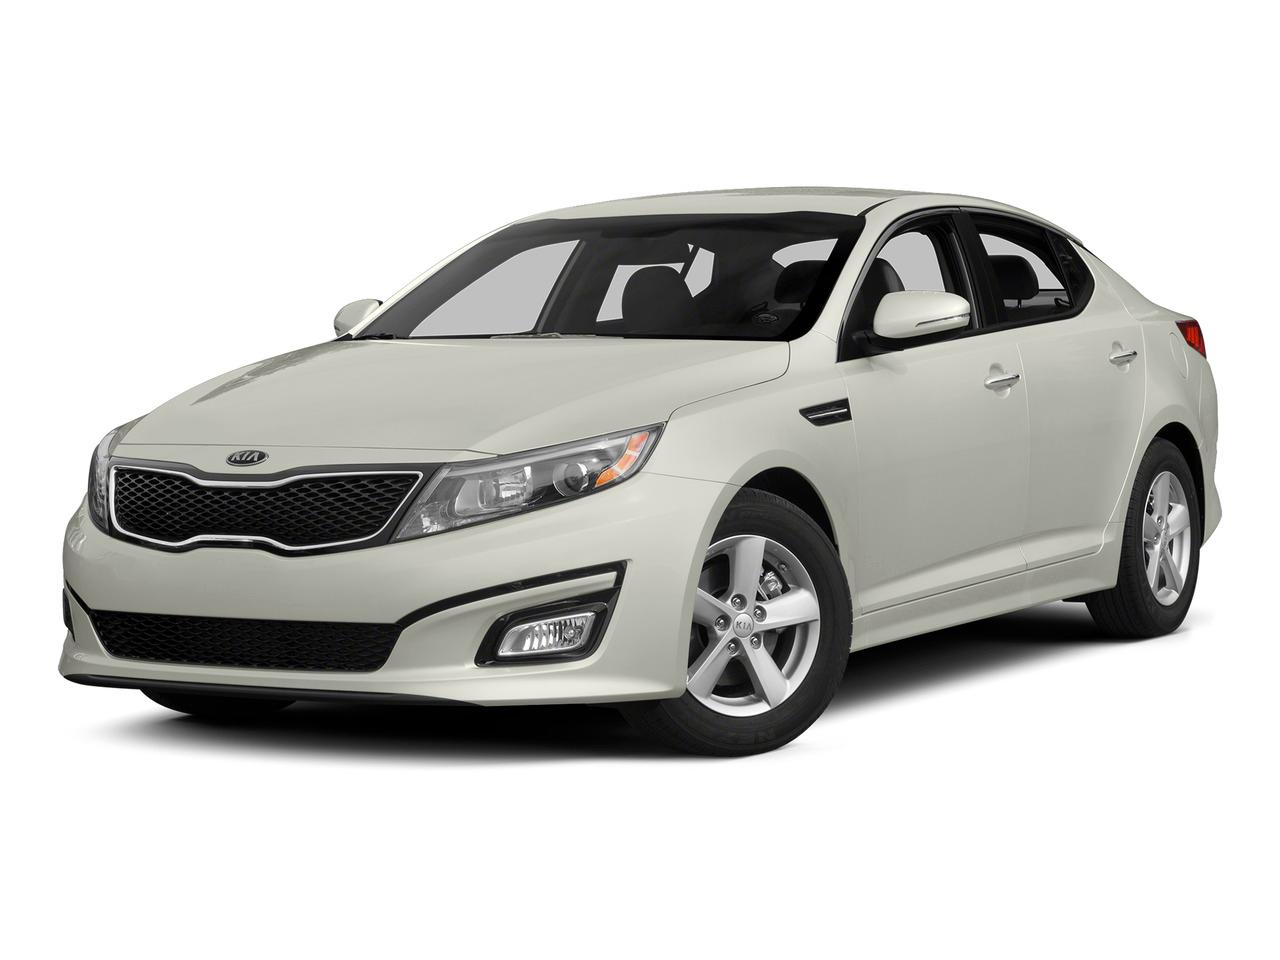 2015 Kia Optima Vehicle Photo in Mission, TX 78572